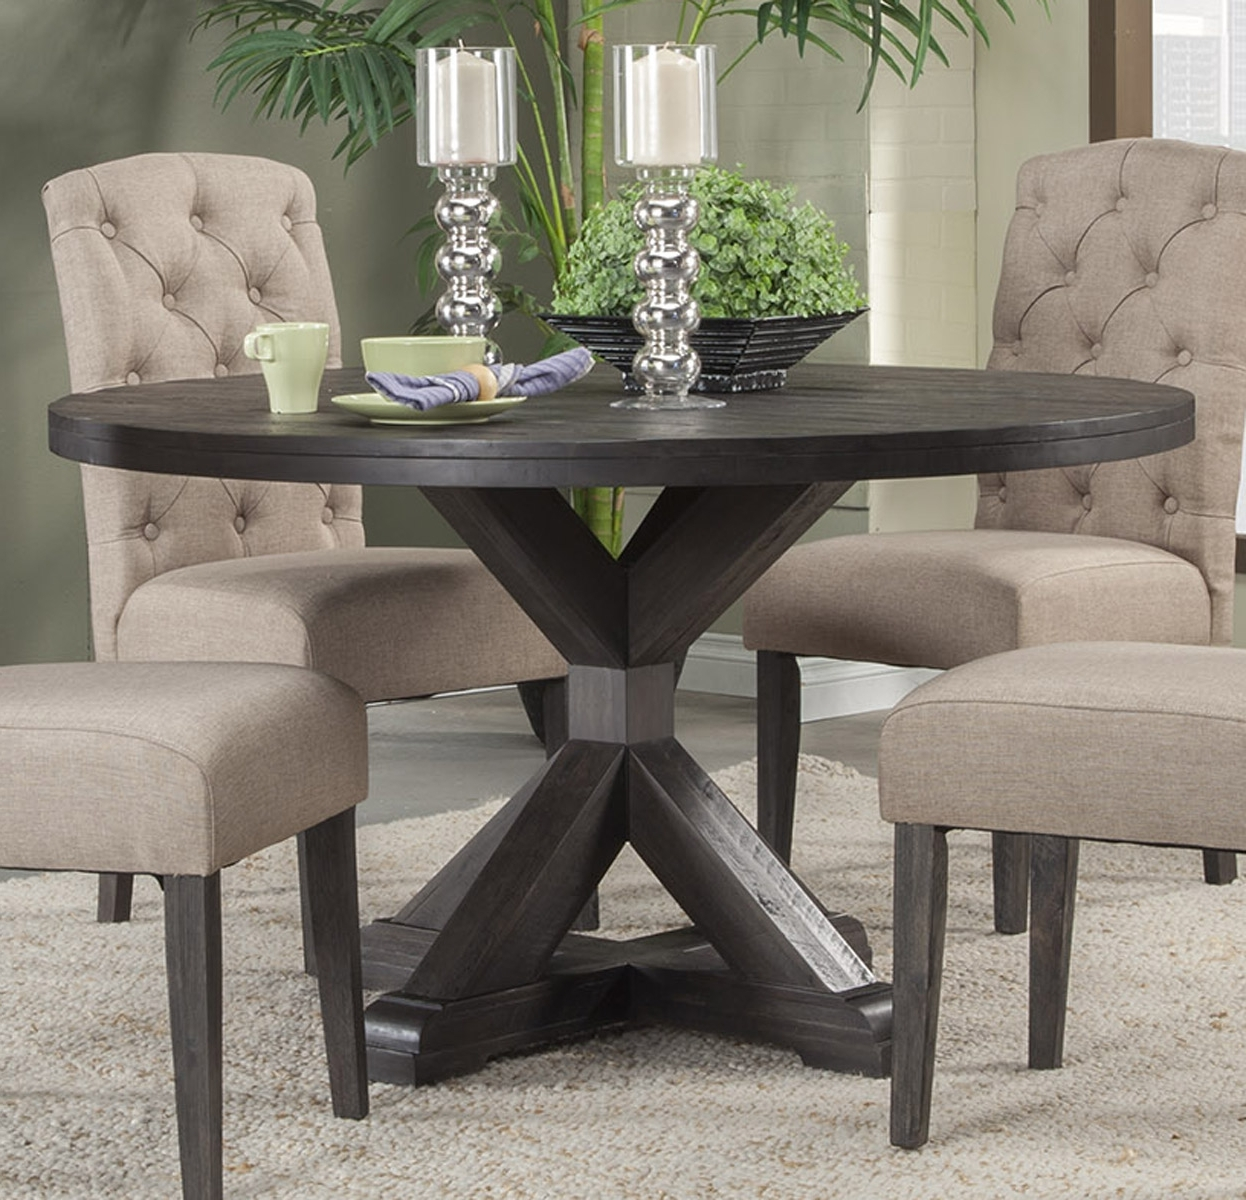 Alpine Furniture Newberry Round Dining Table In Salvaged Grey 1468 Inside 2017 Dining Sets (View 4 of 25)